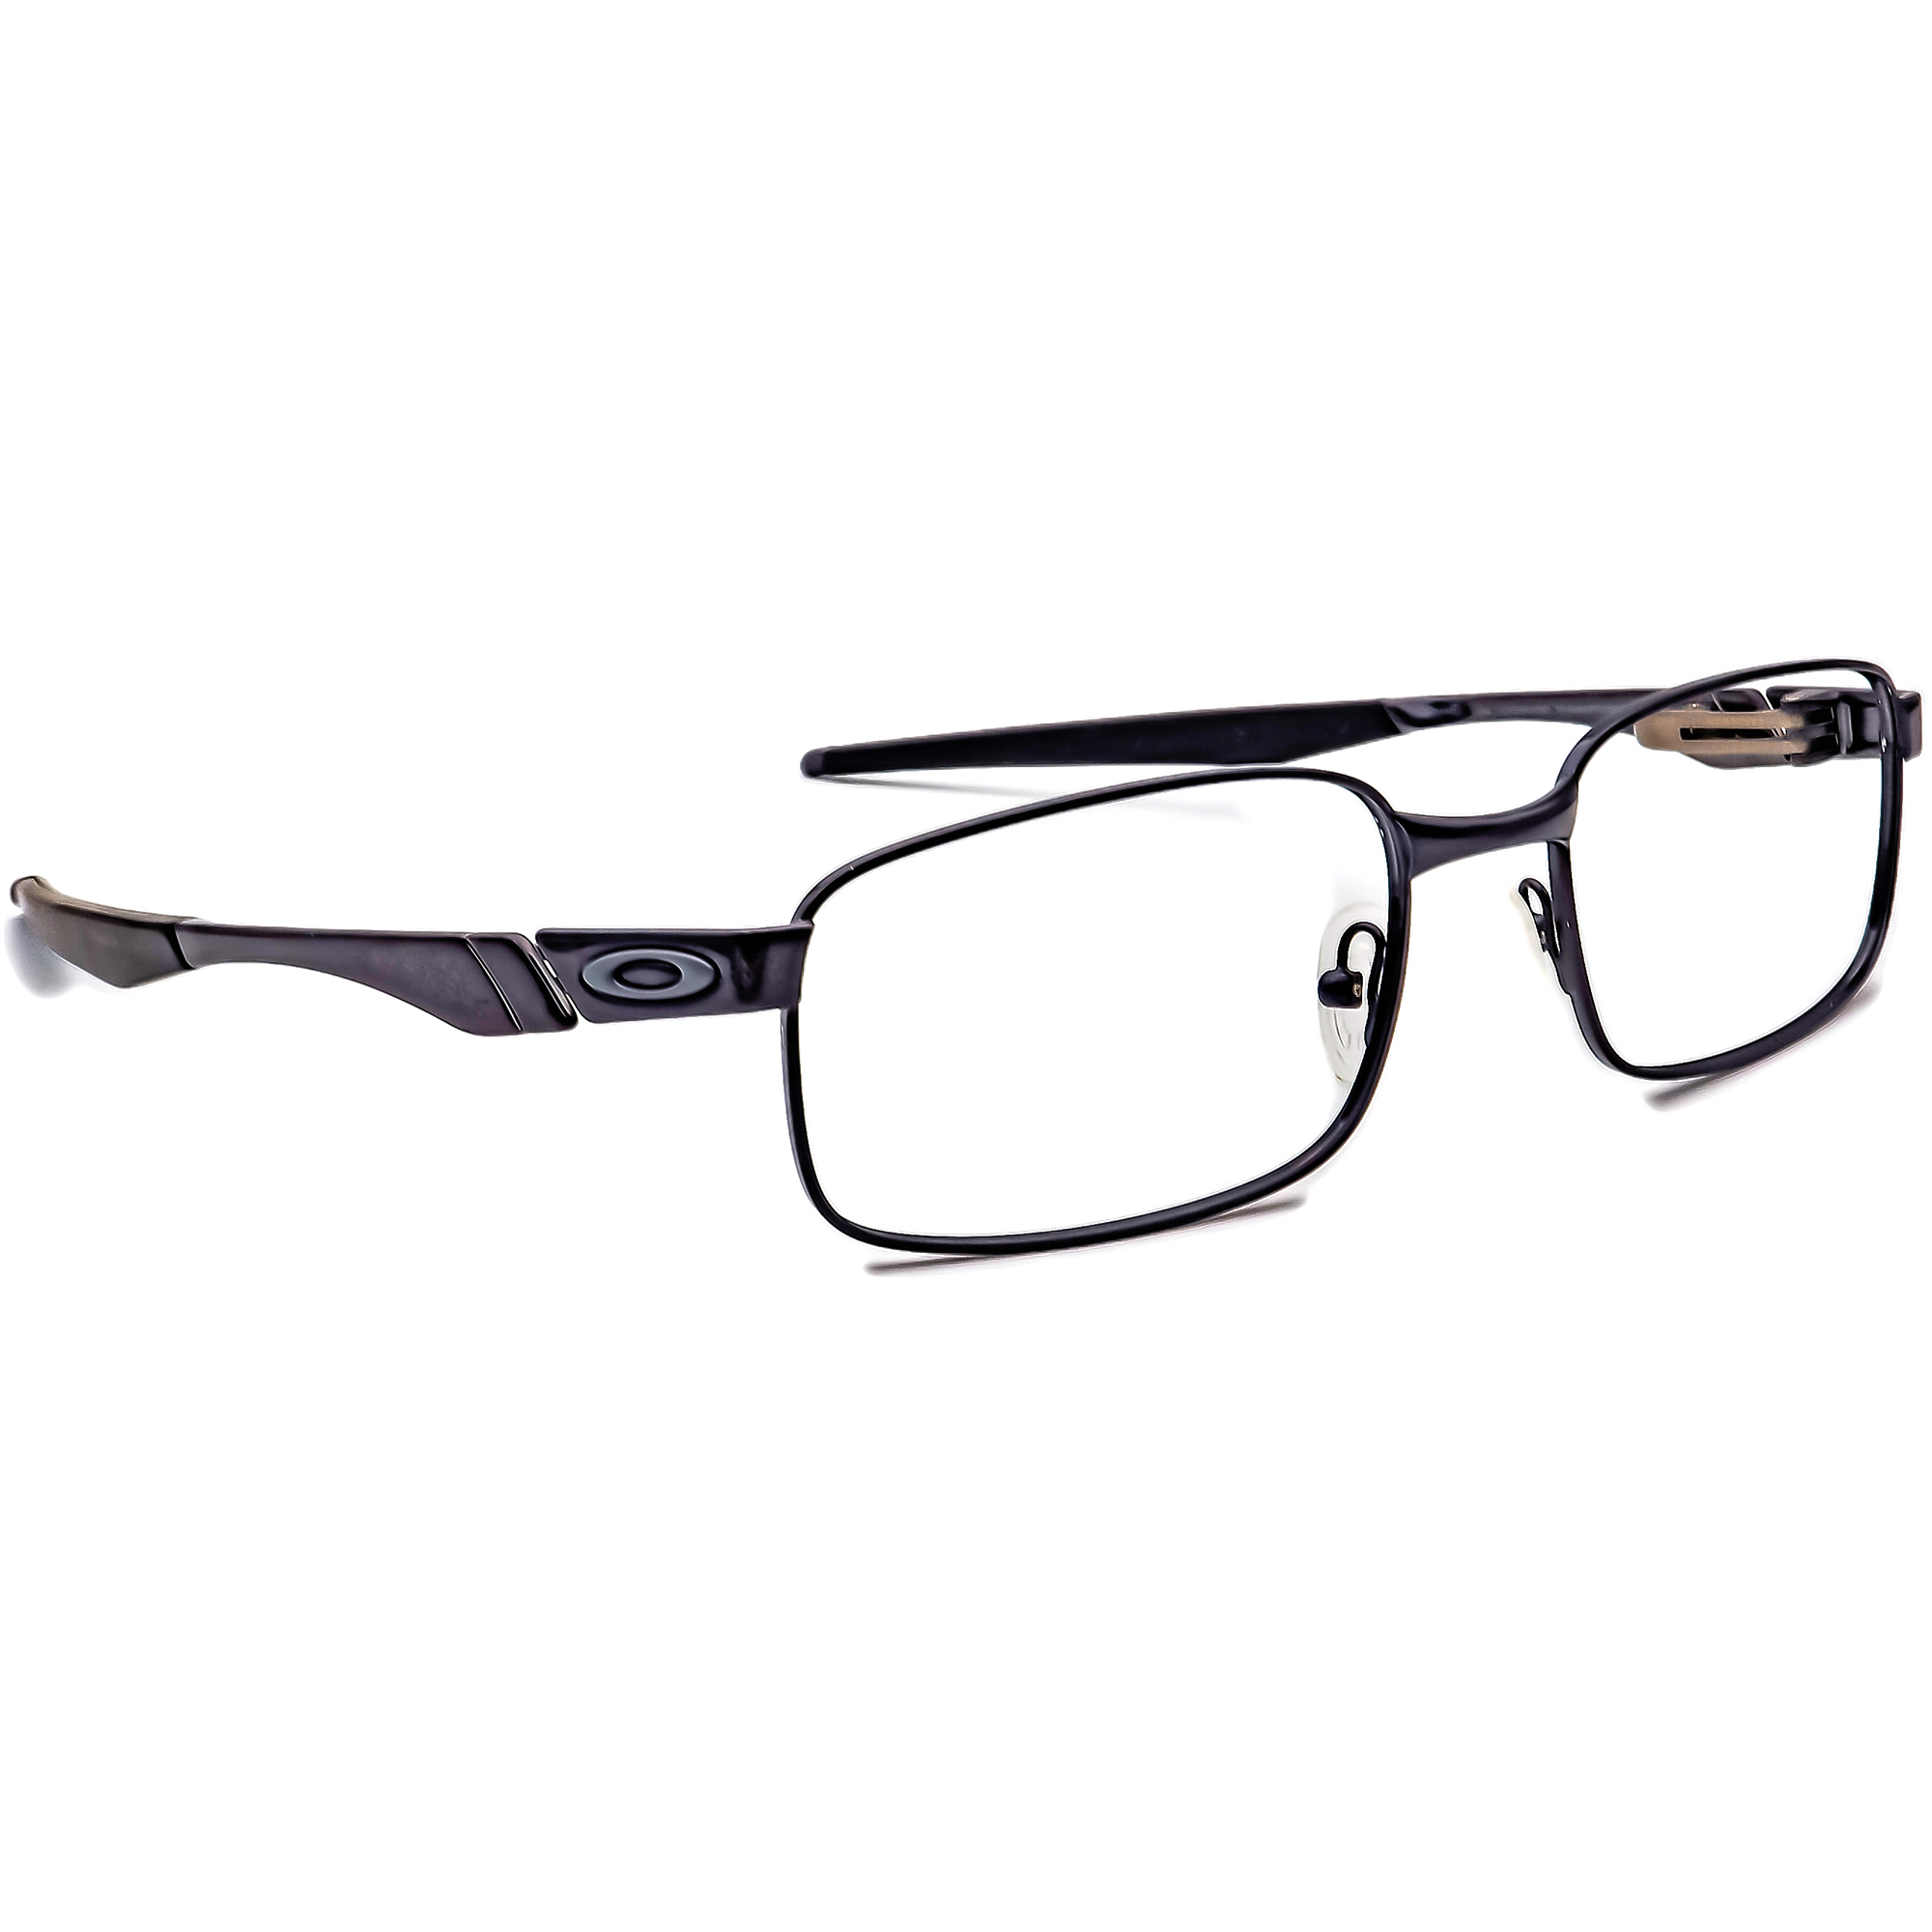 Oakley OX3164-0455 Backwind Eyeglasses